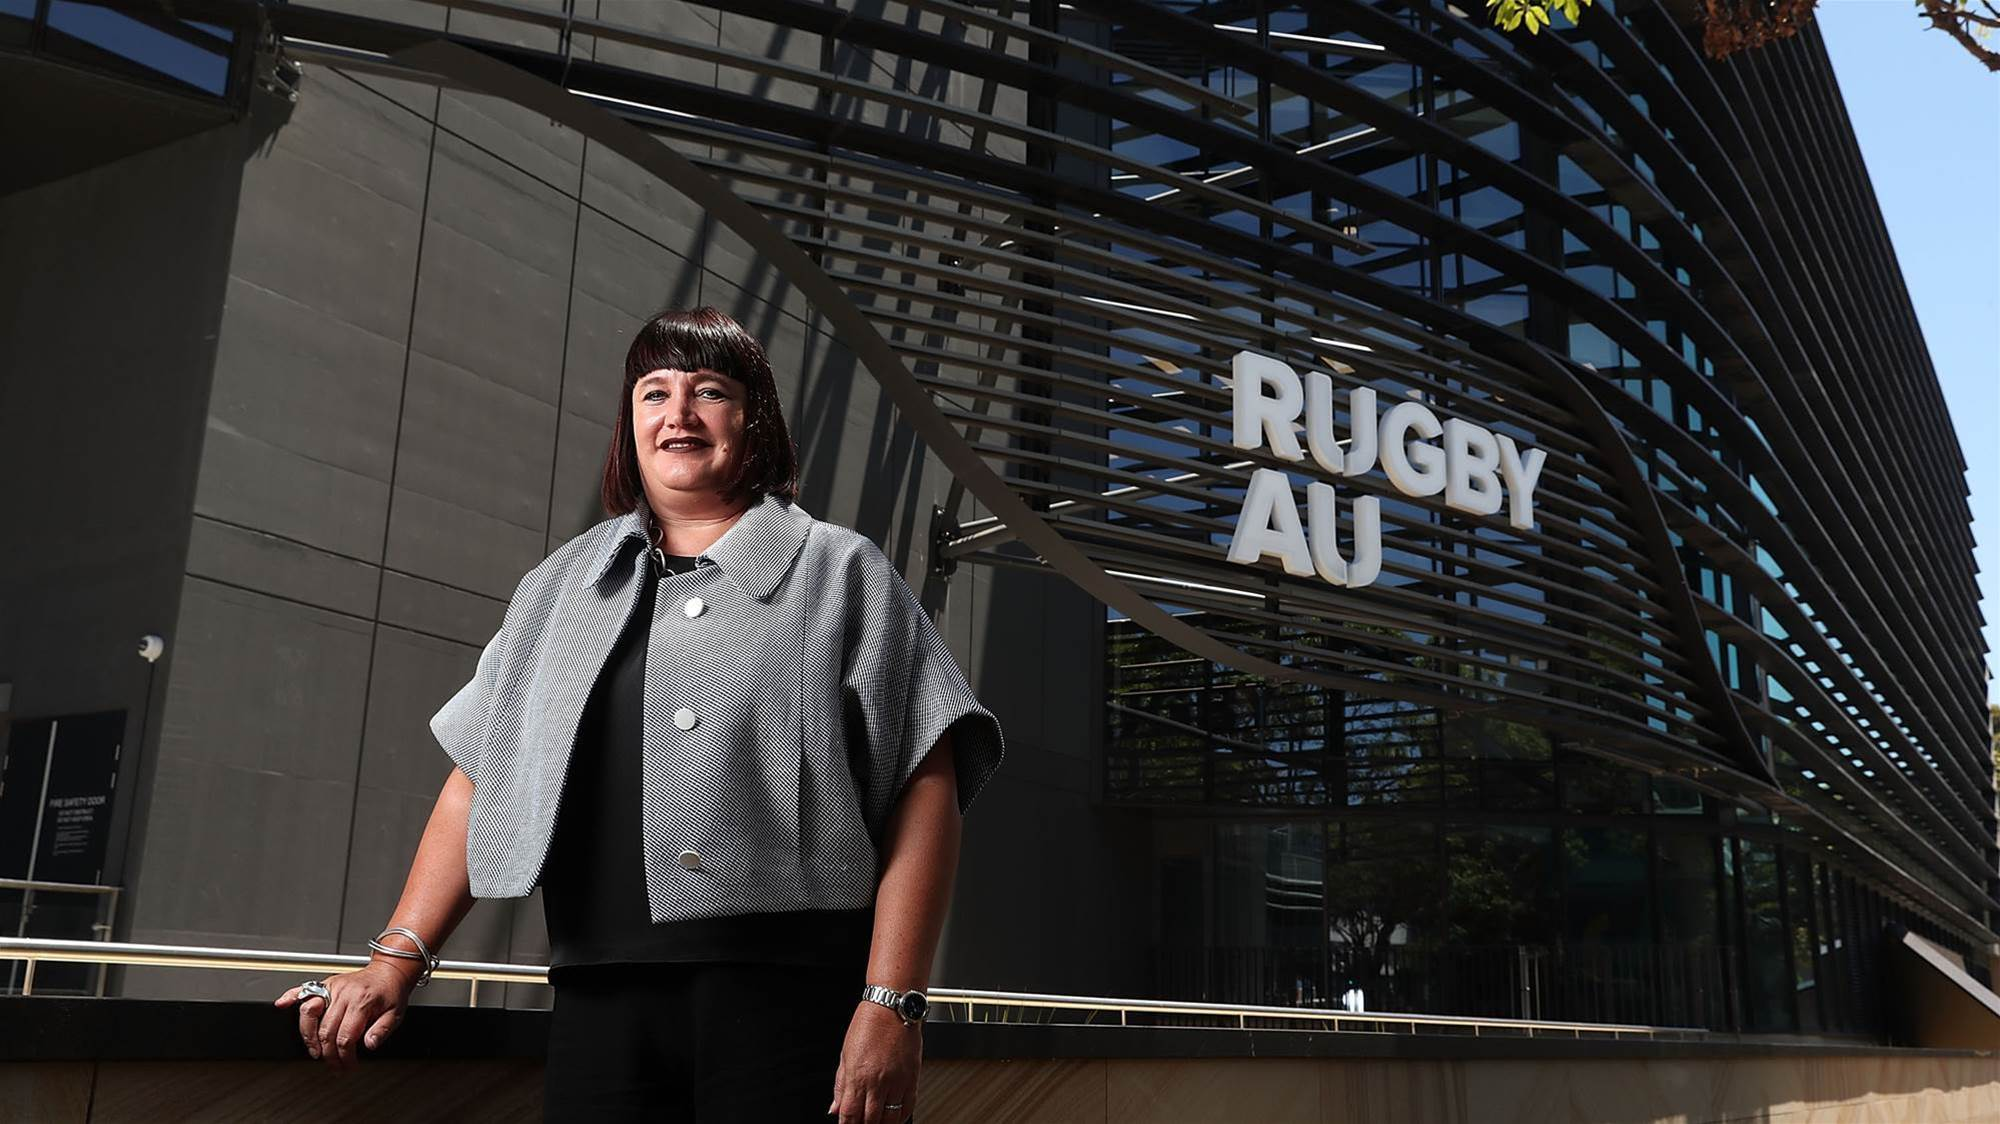 Castle: Women's rugby will grow